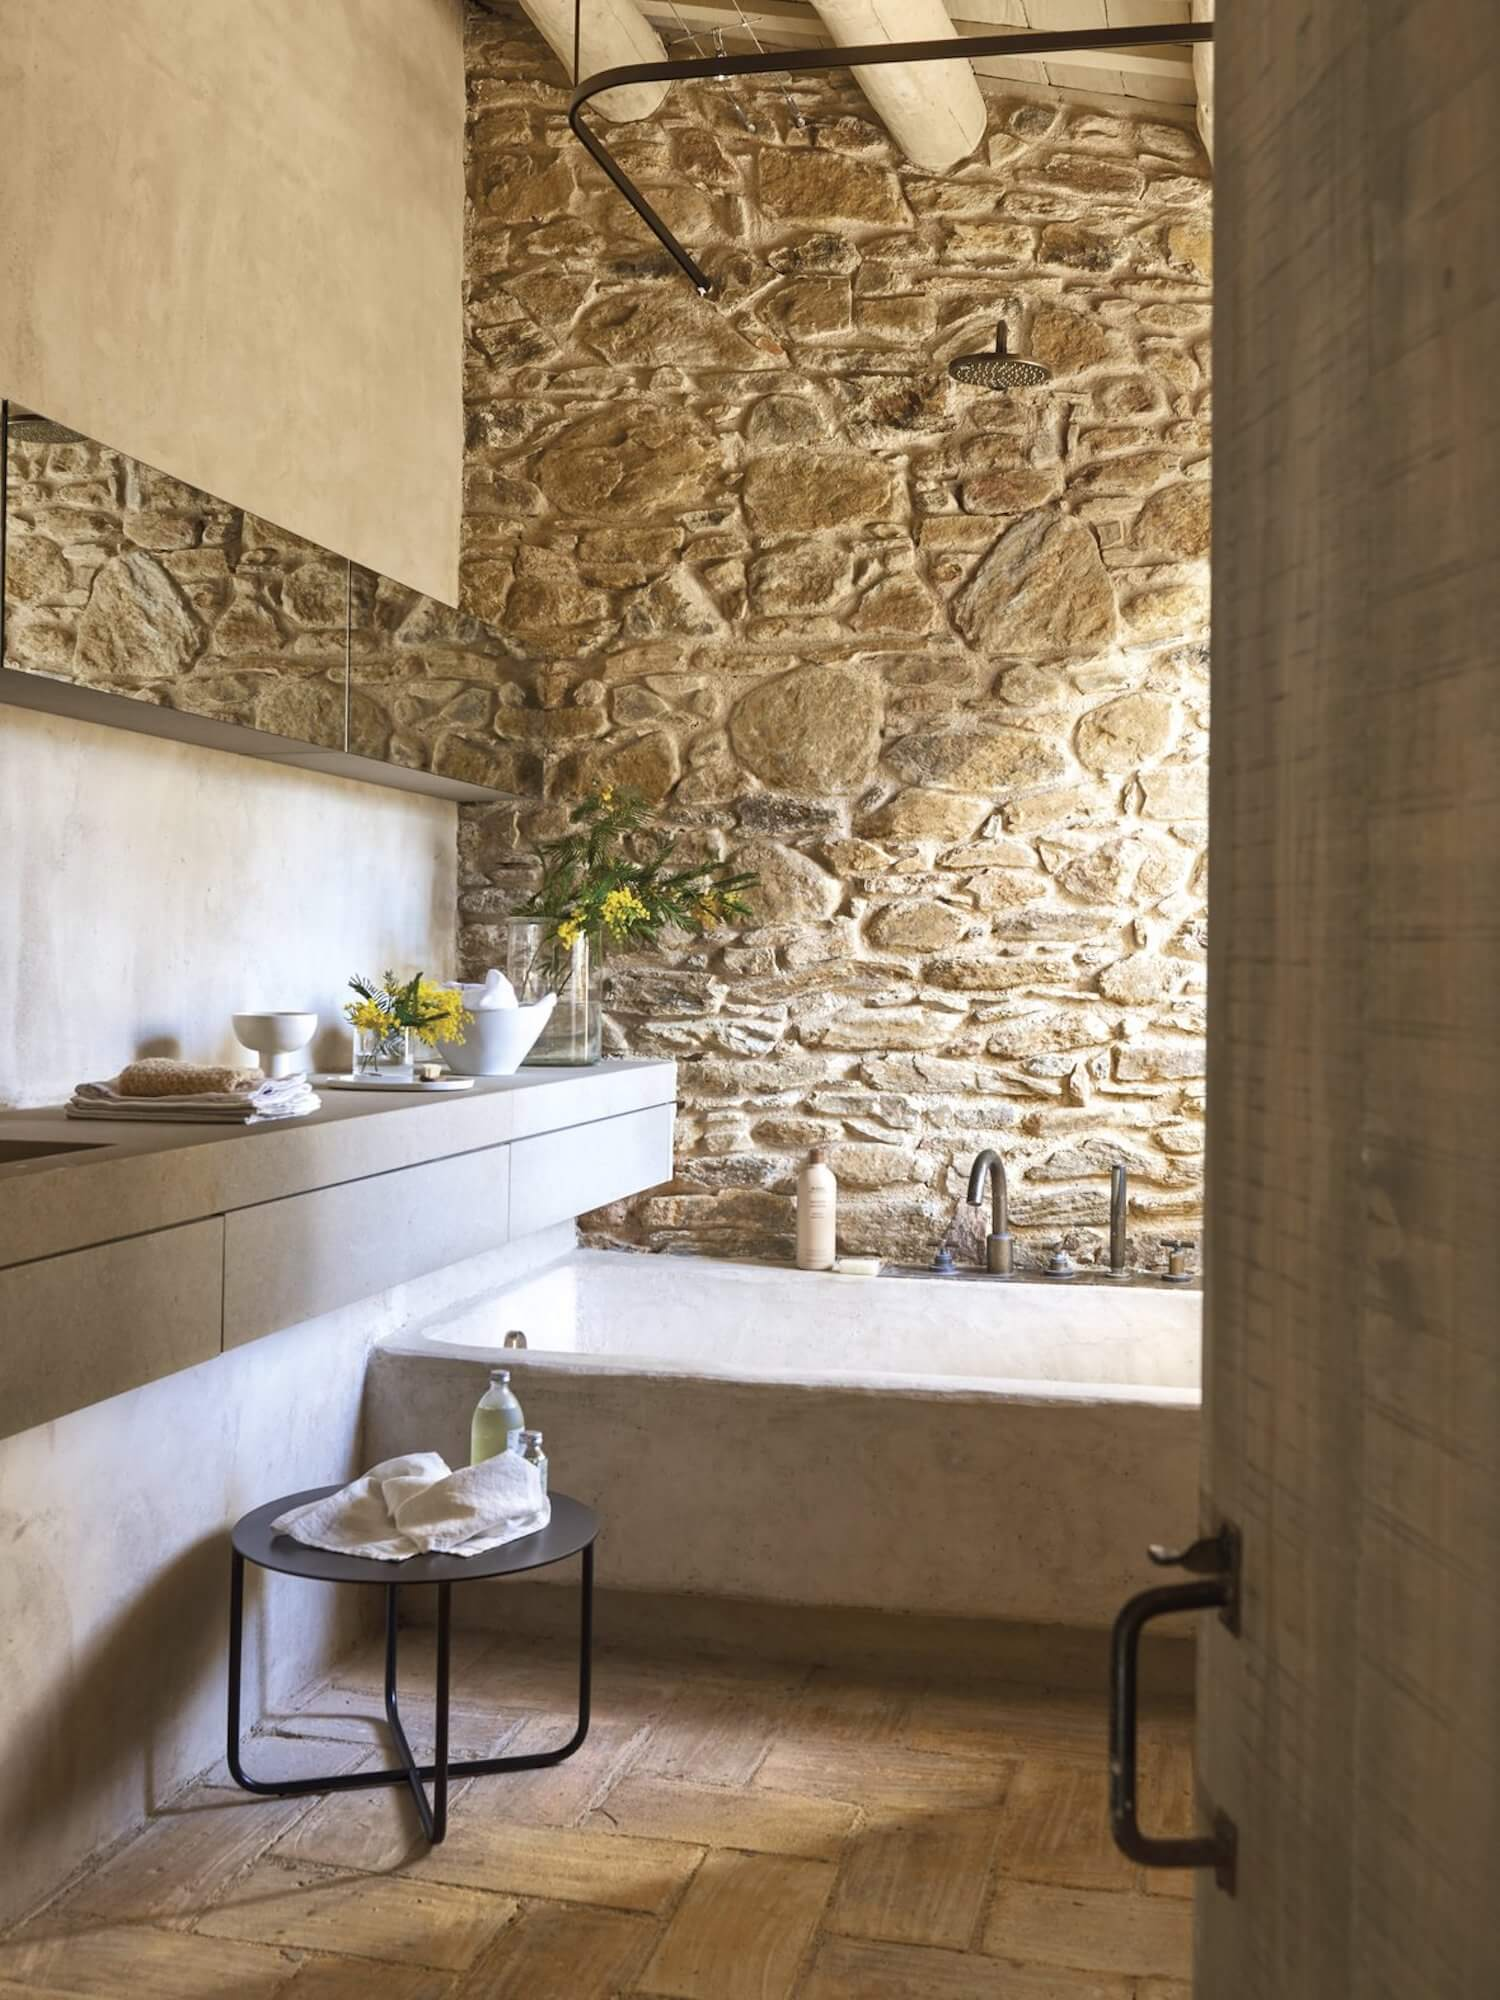 Catalonian Farmhouse Est Collection: Rural Spanish Retreats est living